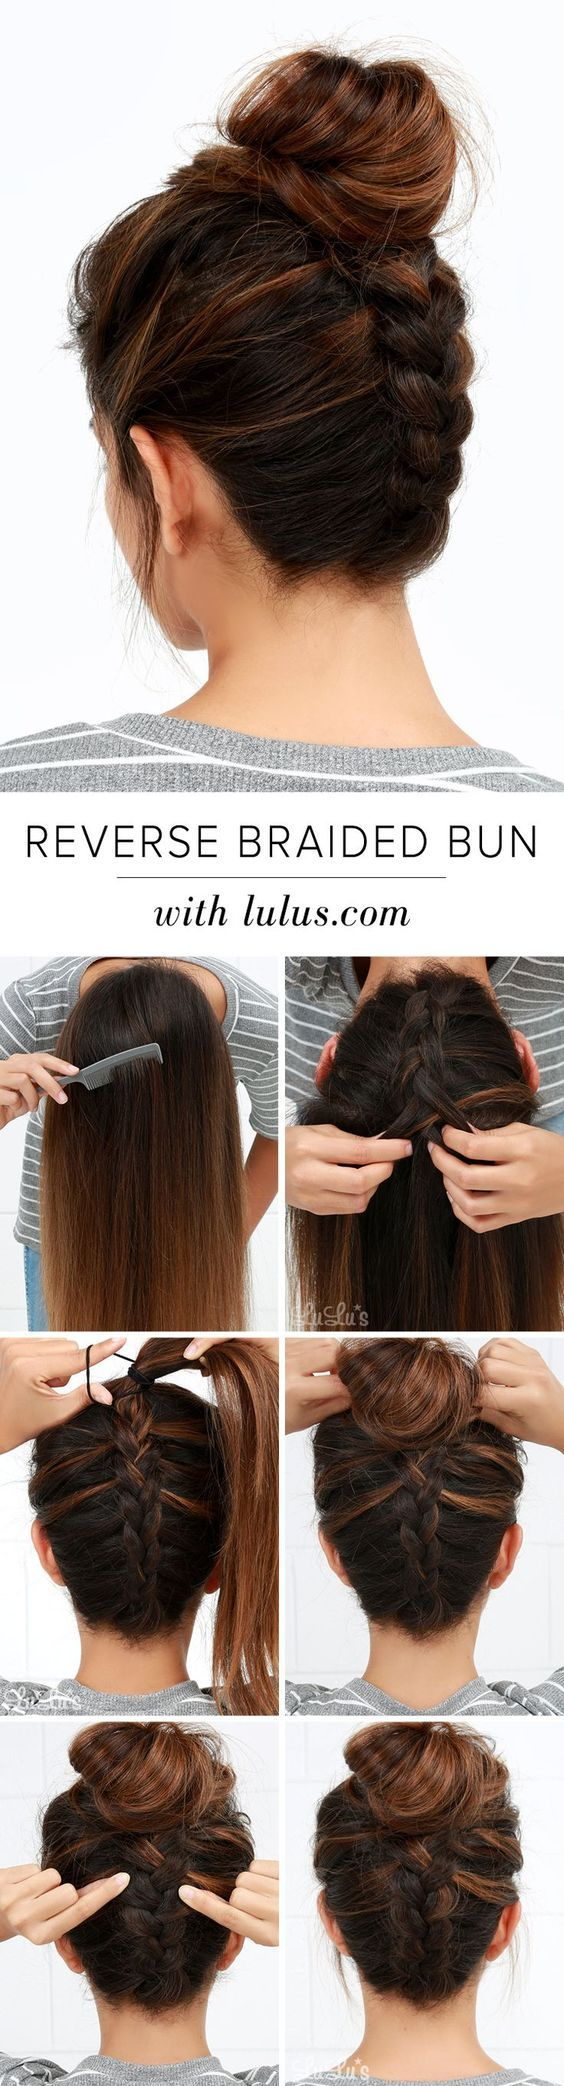 best hairstyles images on pinterest hairstyles make up and braids